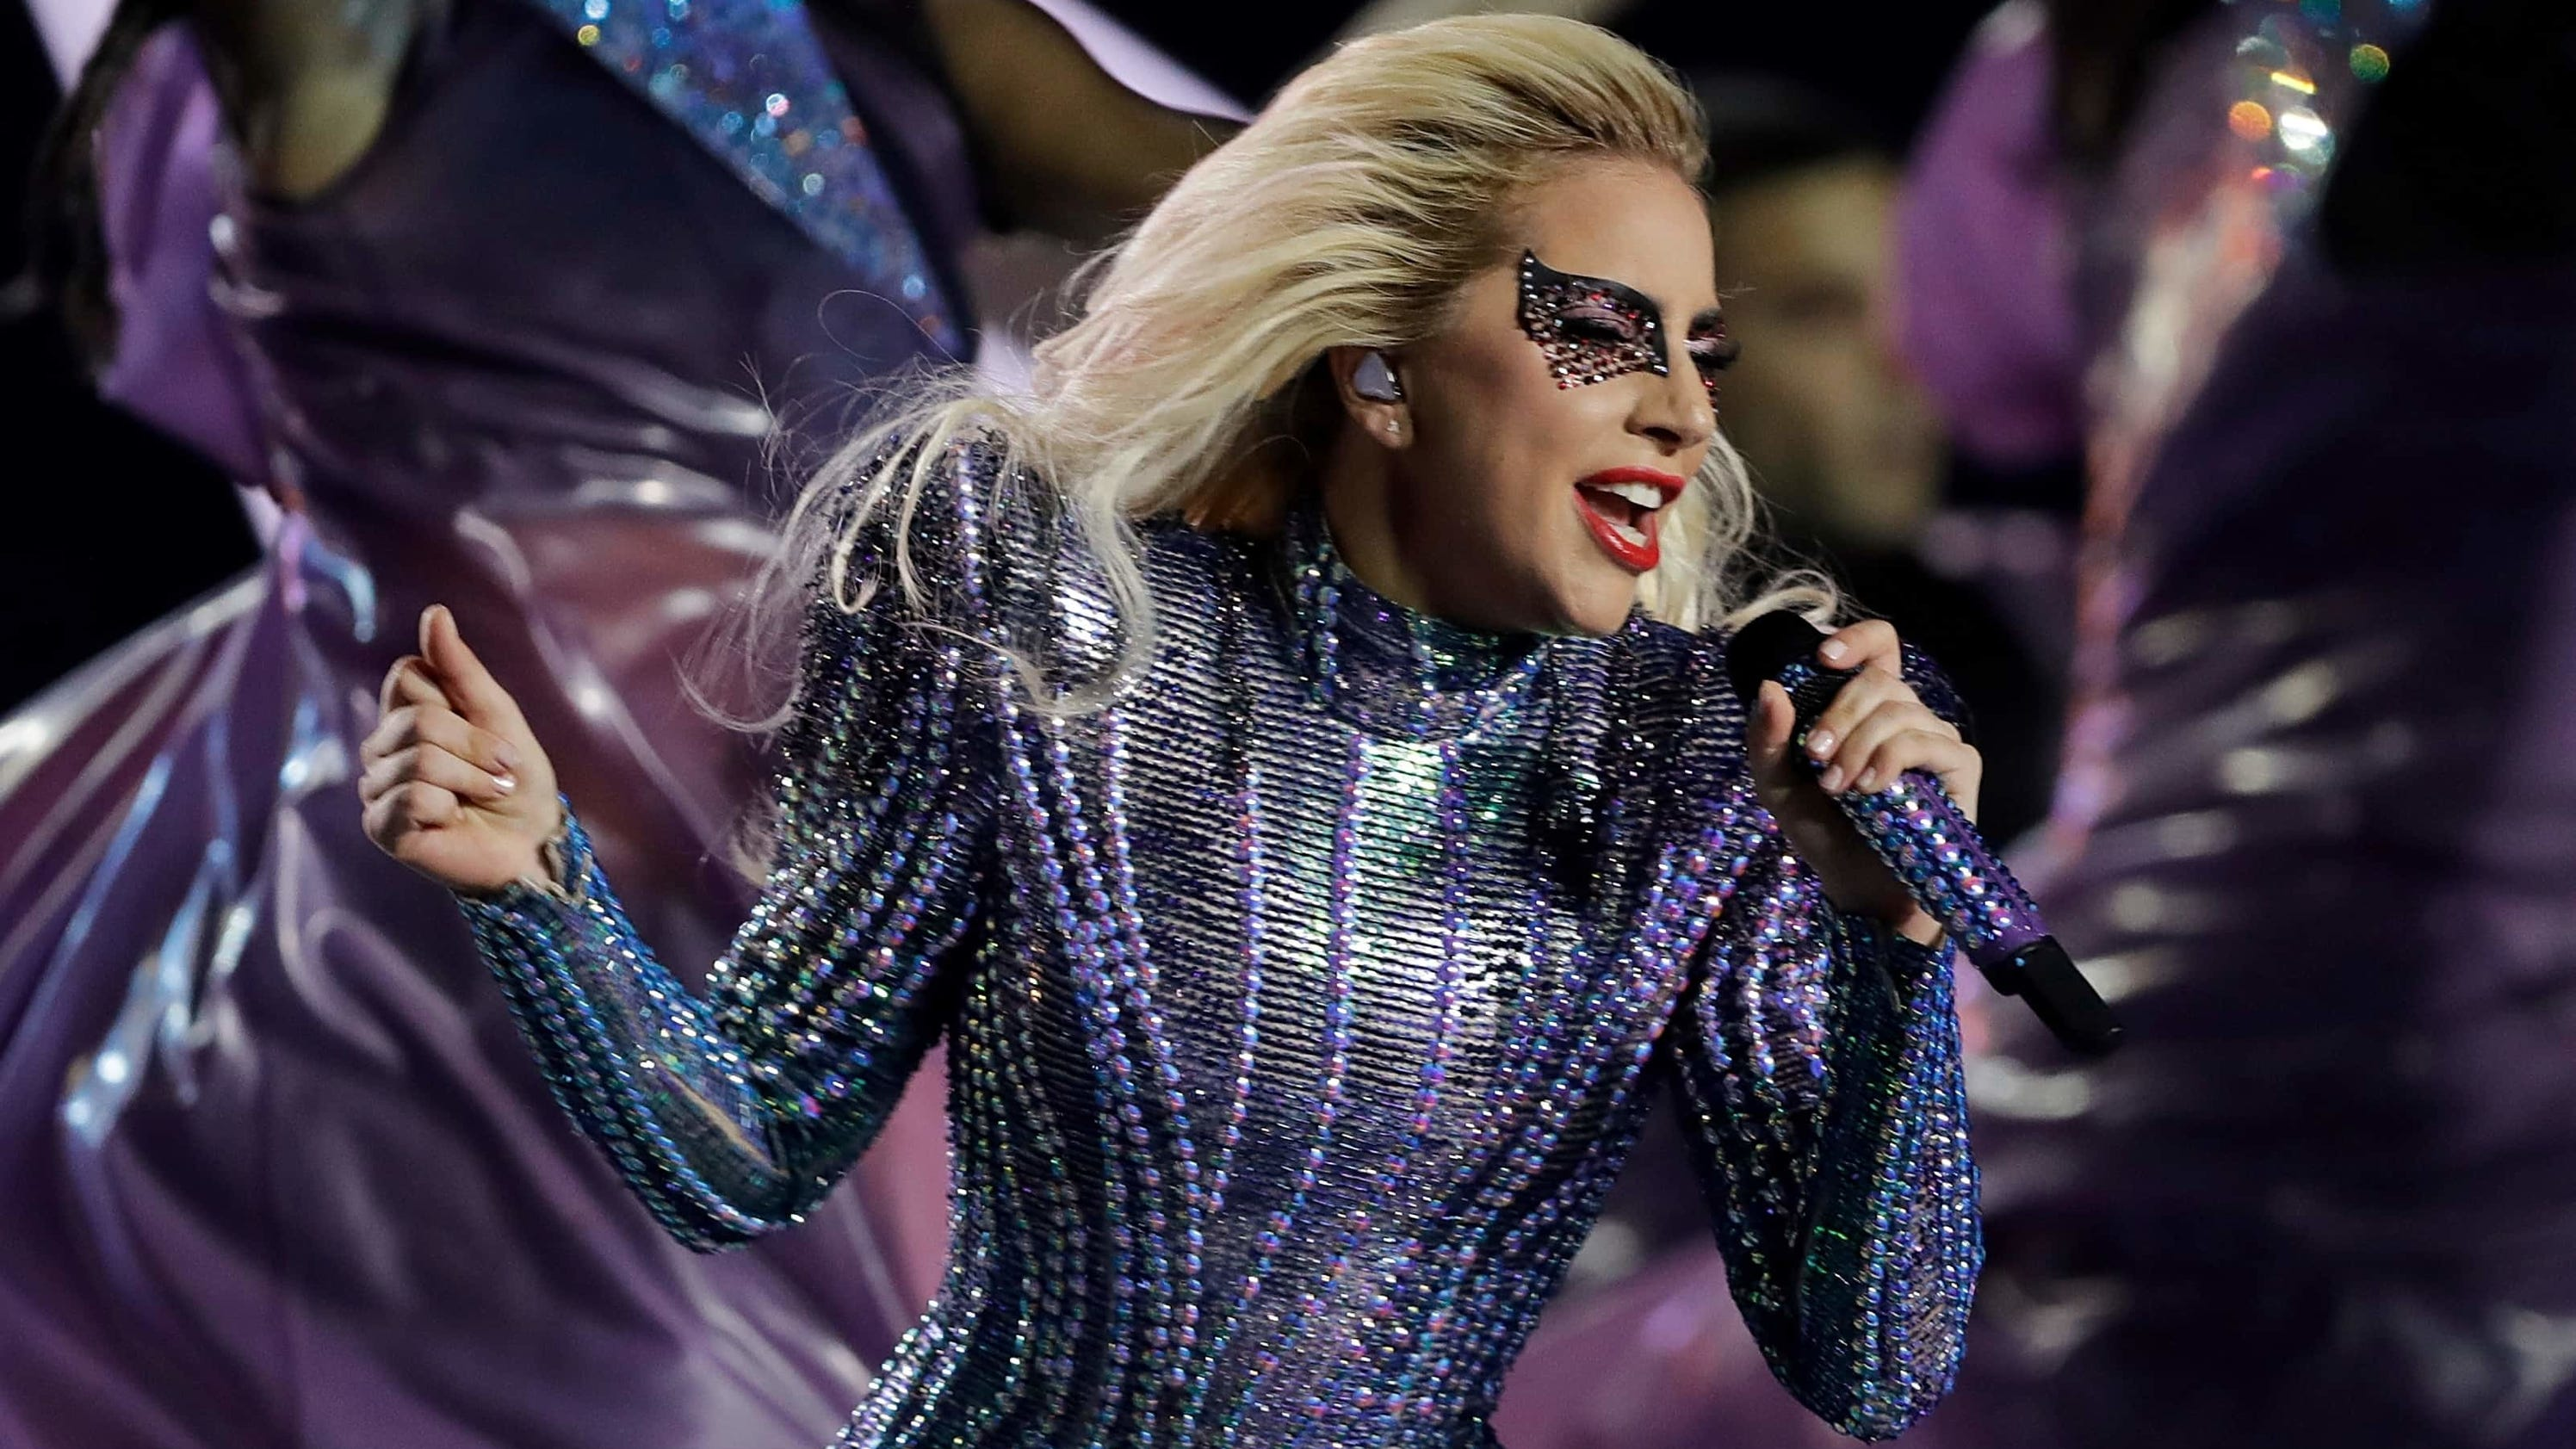 What Lady Gaga *really* sounded like at Super Bowl 51